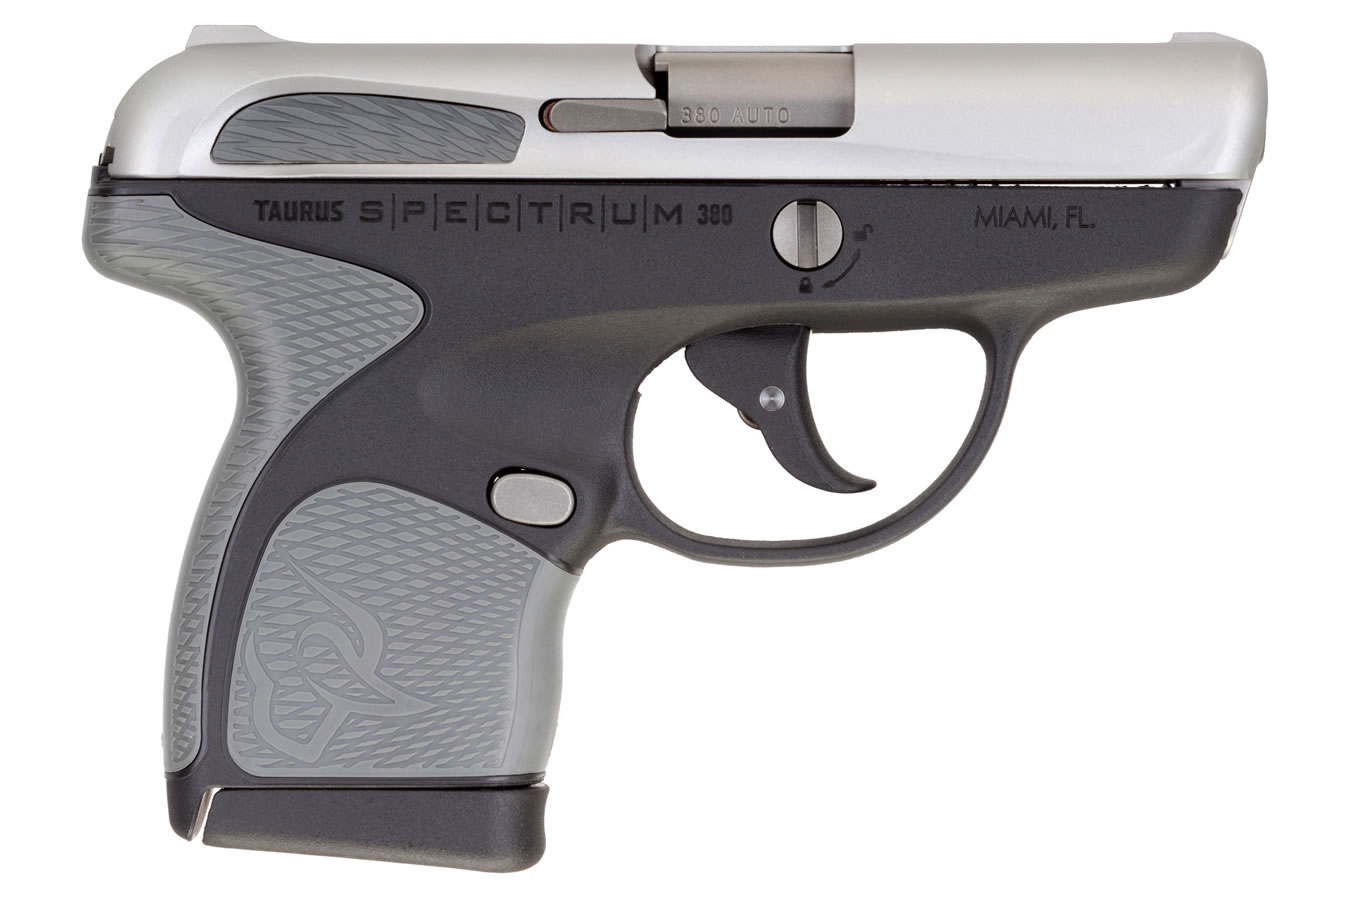 No. 7 Best Selling: TAURUS SPECTRUM .380 AUTO BLACK/STAINLESS WITH GRAY GRIPS